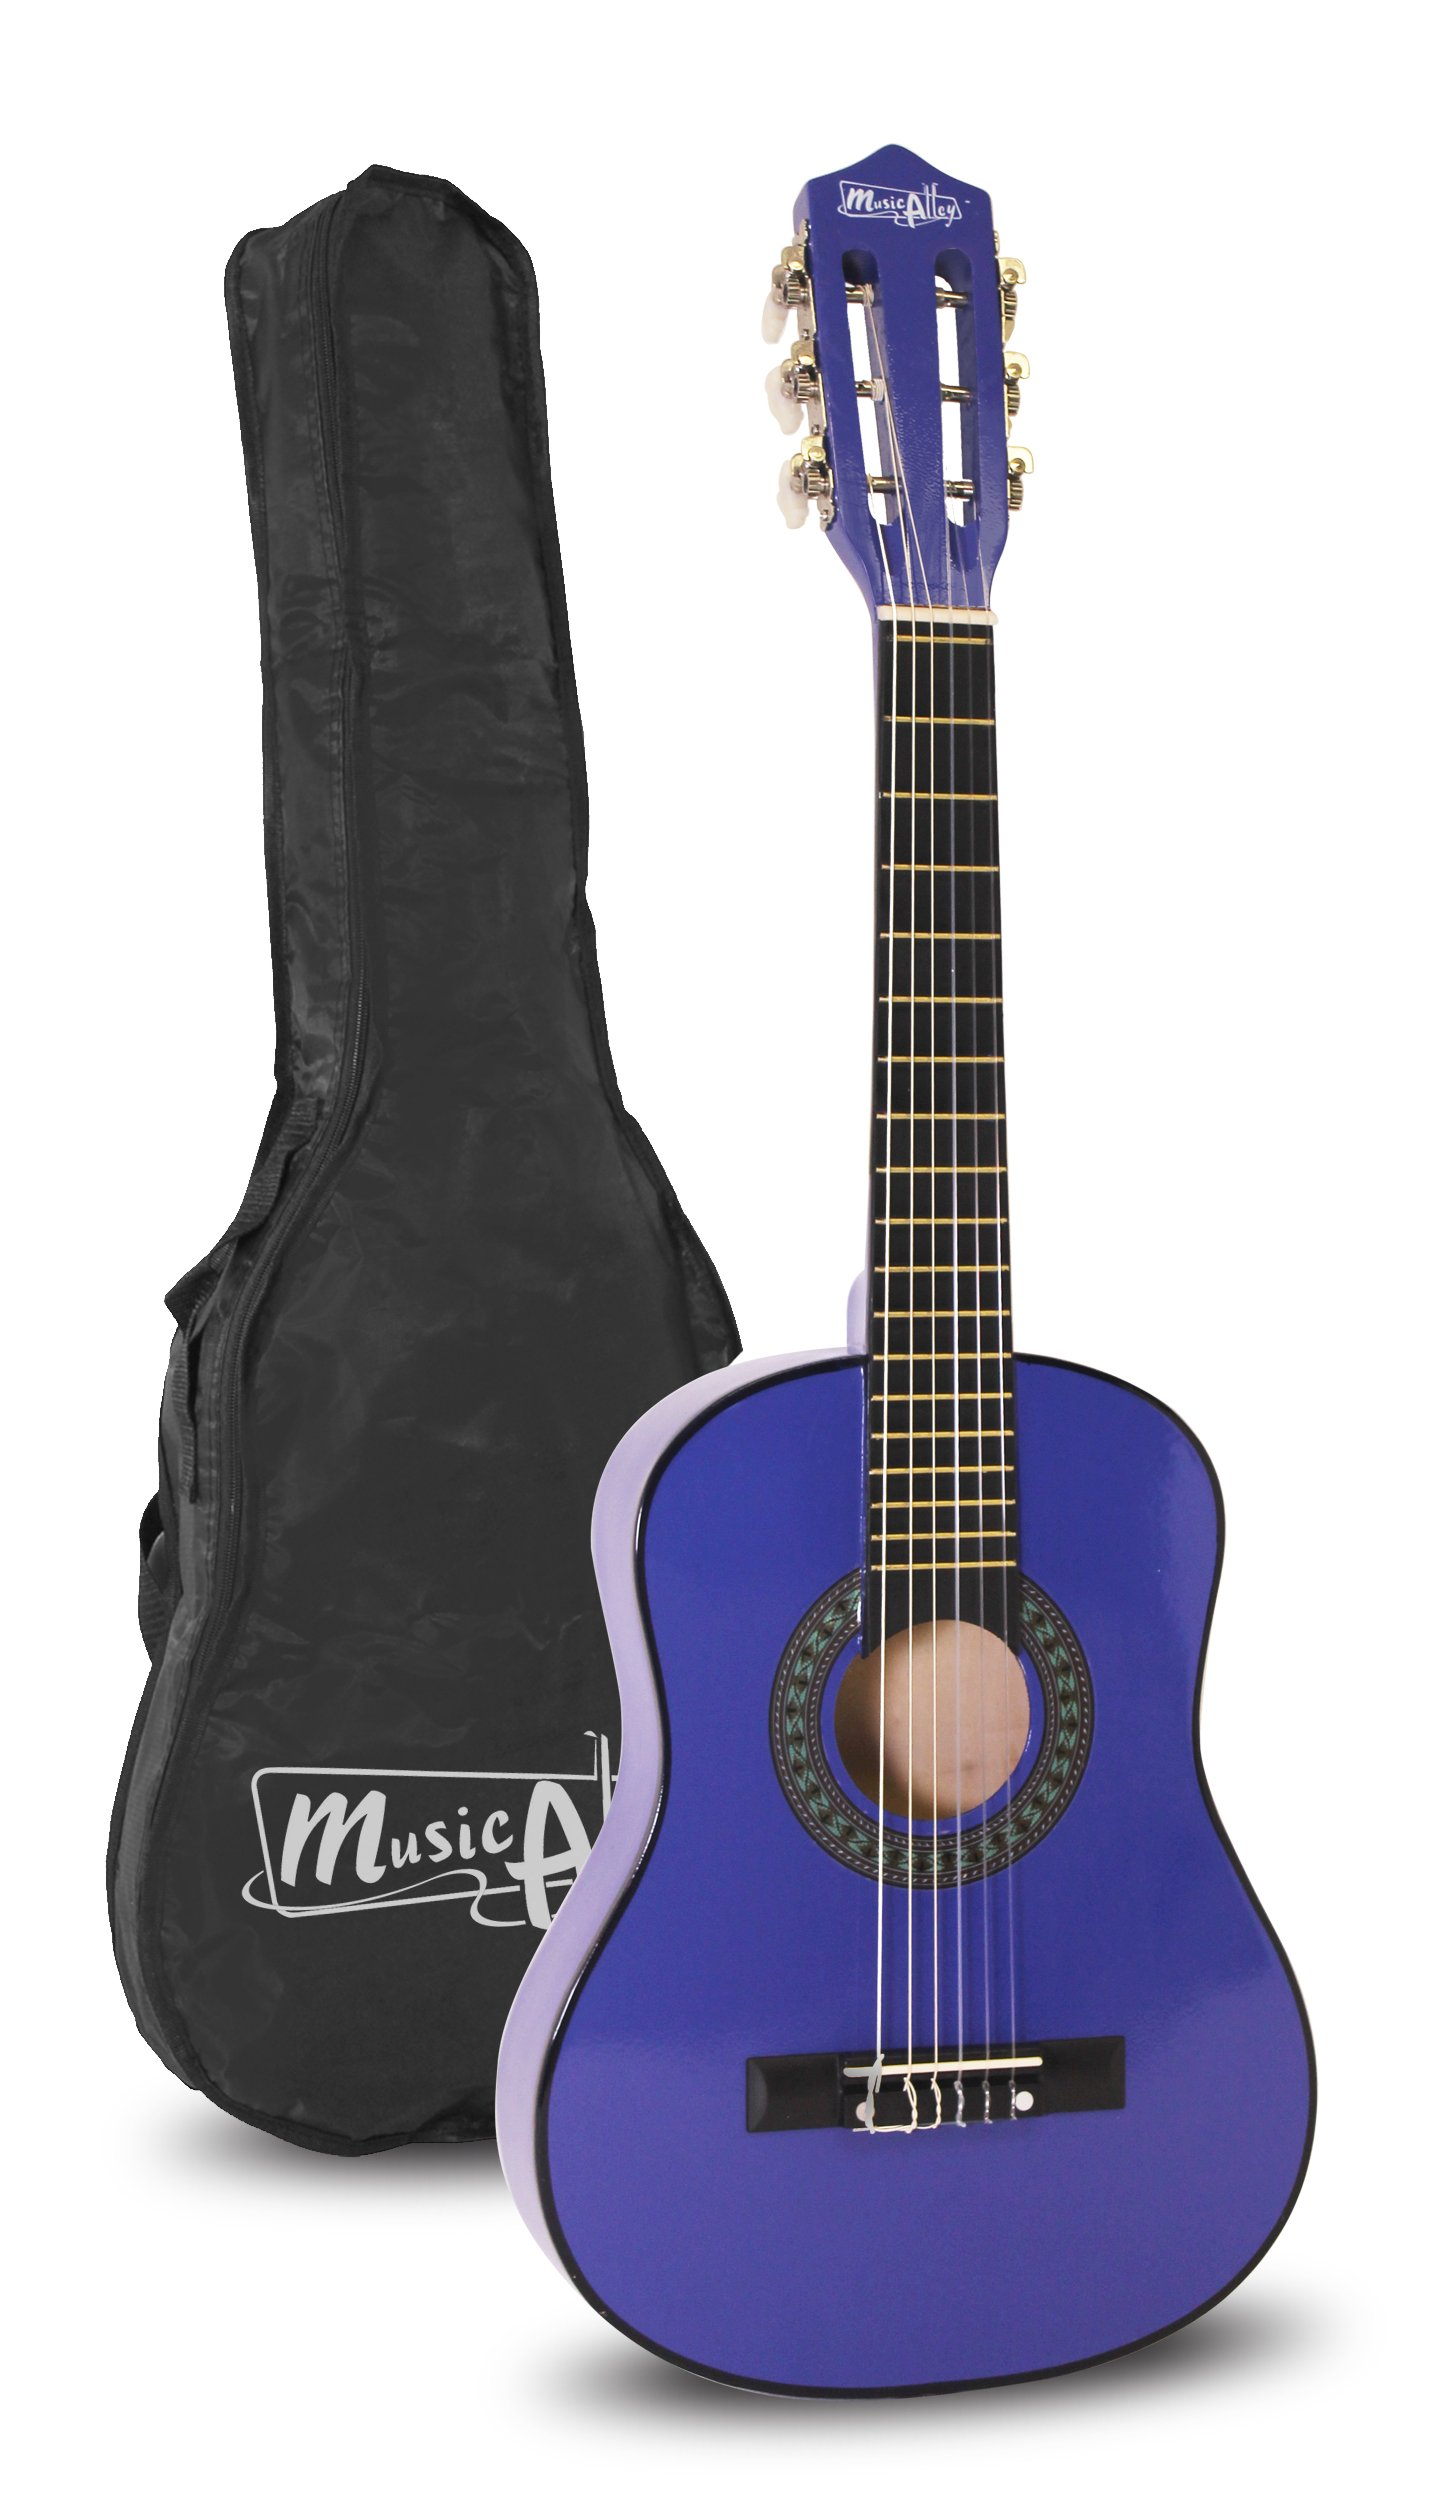 Music Alley 6 String 30 inch Half Size Junior Guitar For Young Kids Blue MA-52